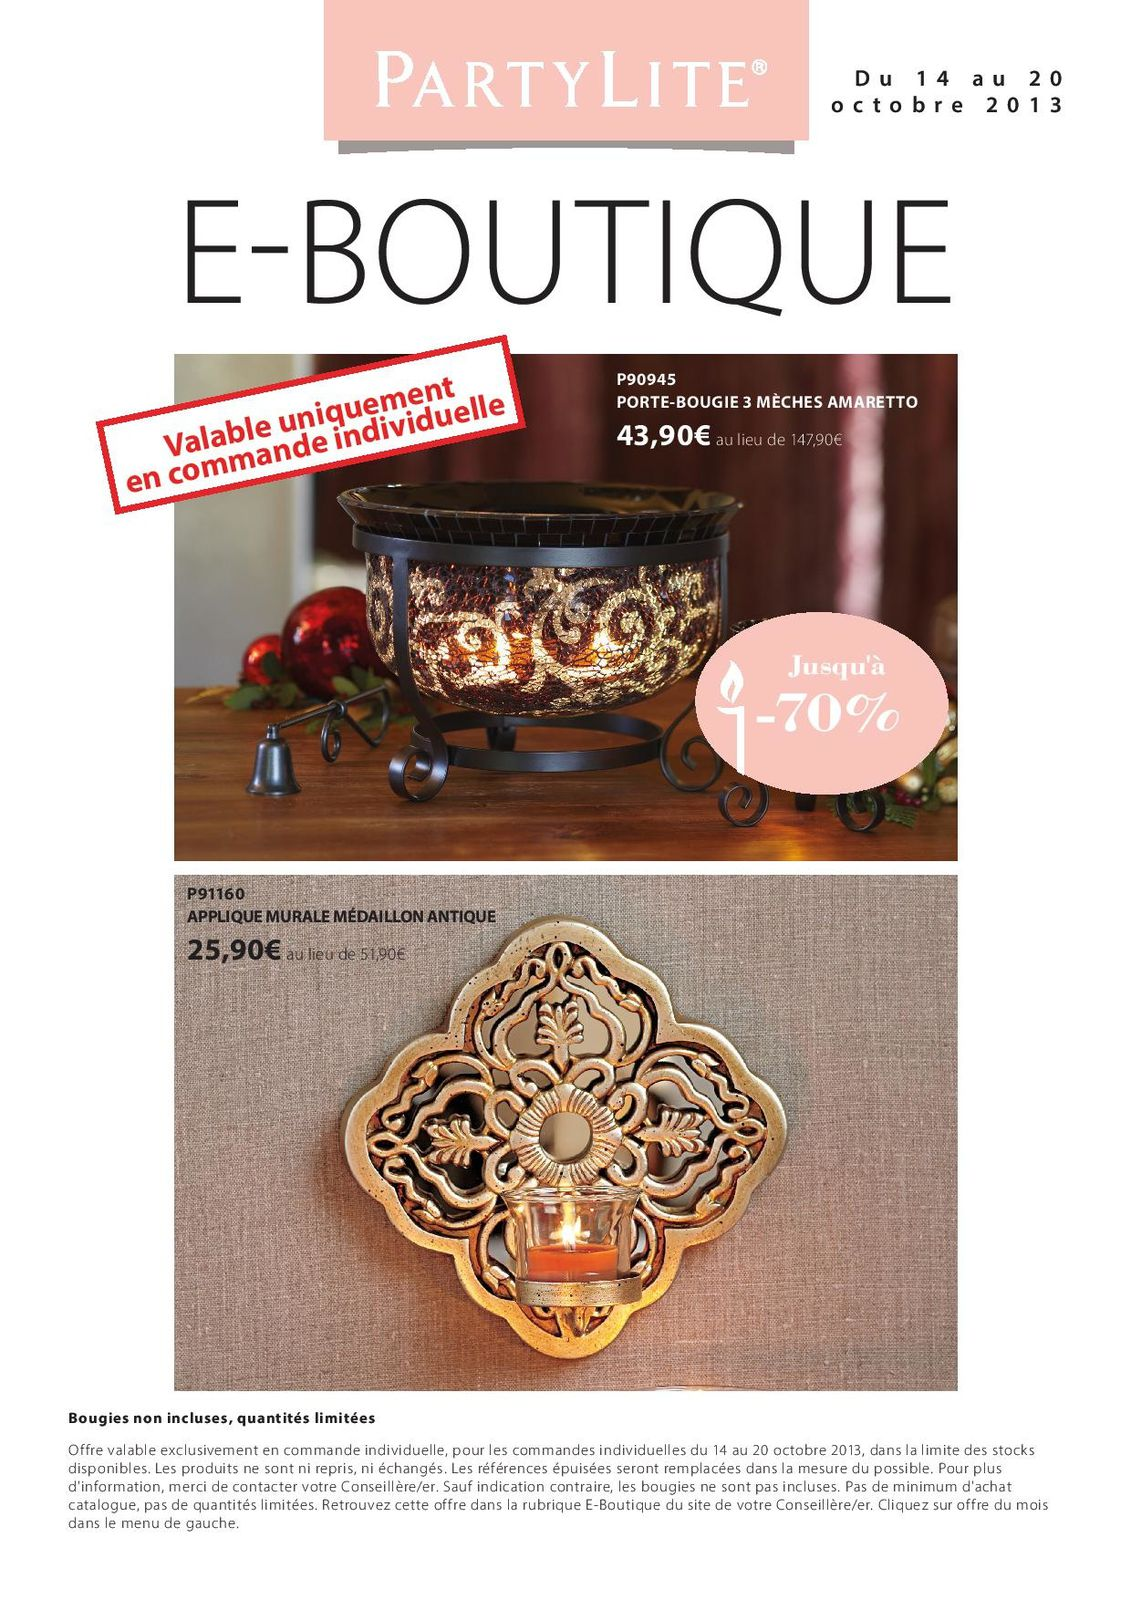 Offre Exclusive e-boutique du 14 au 20 octobre 2013